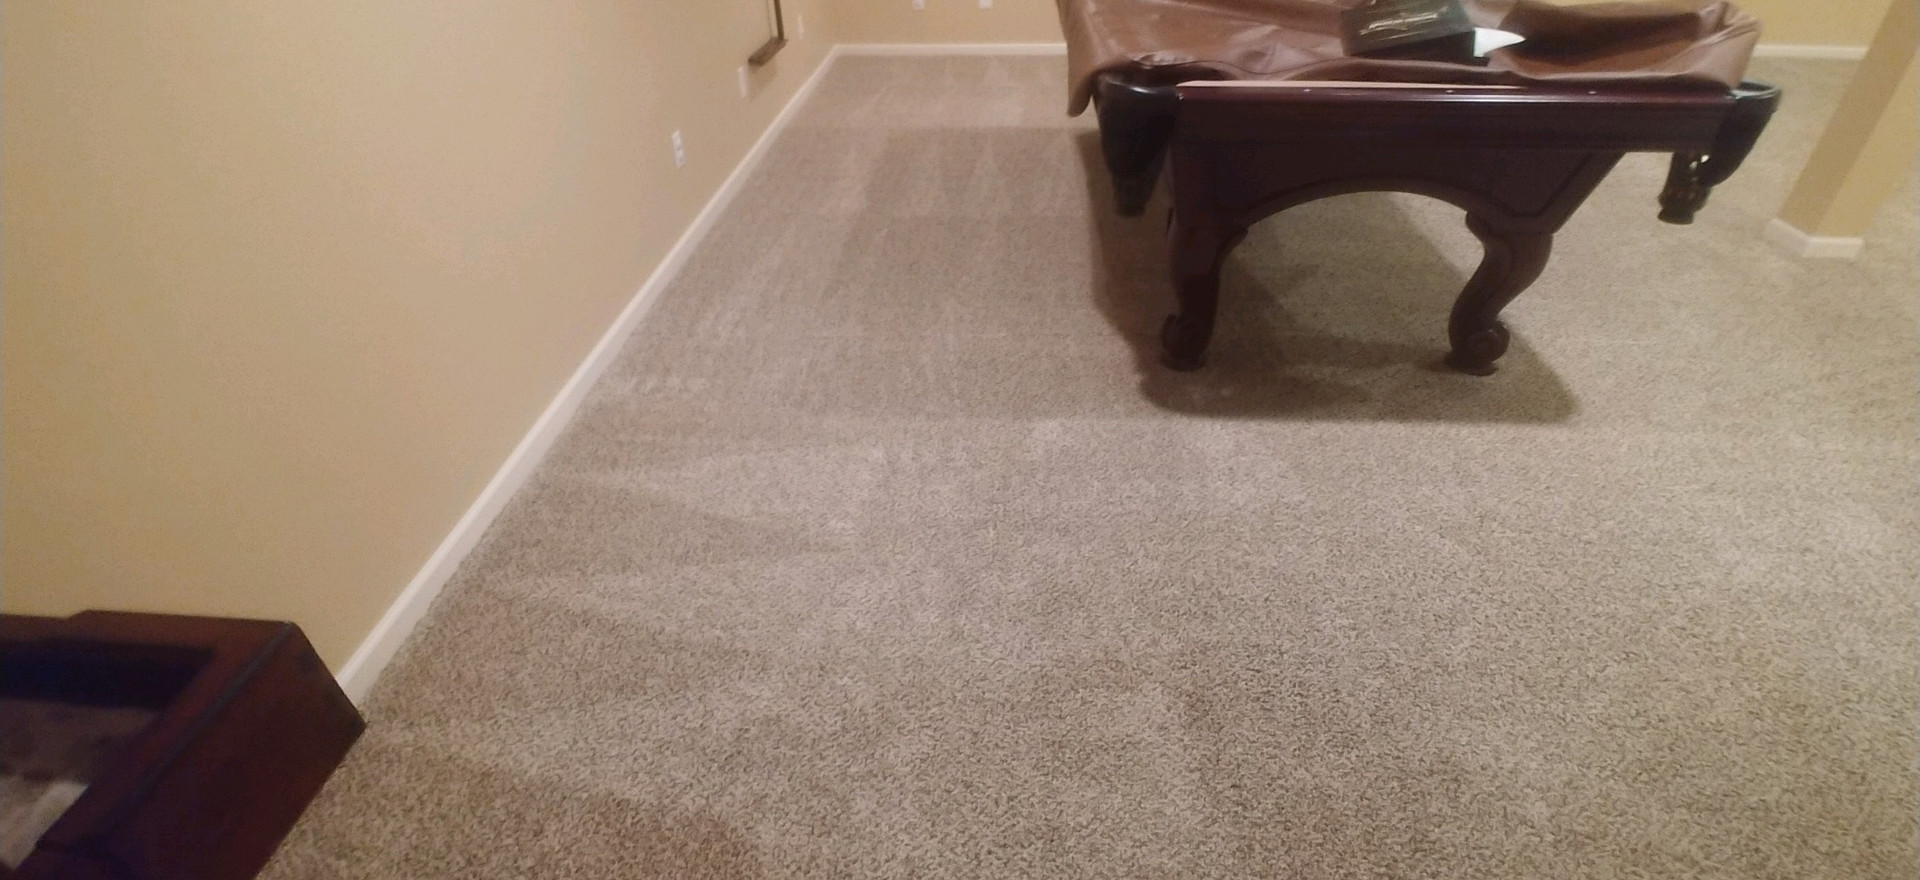 Affordable Carpet Steam Cleaning In West Bloomfield, MI